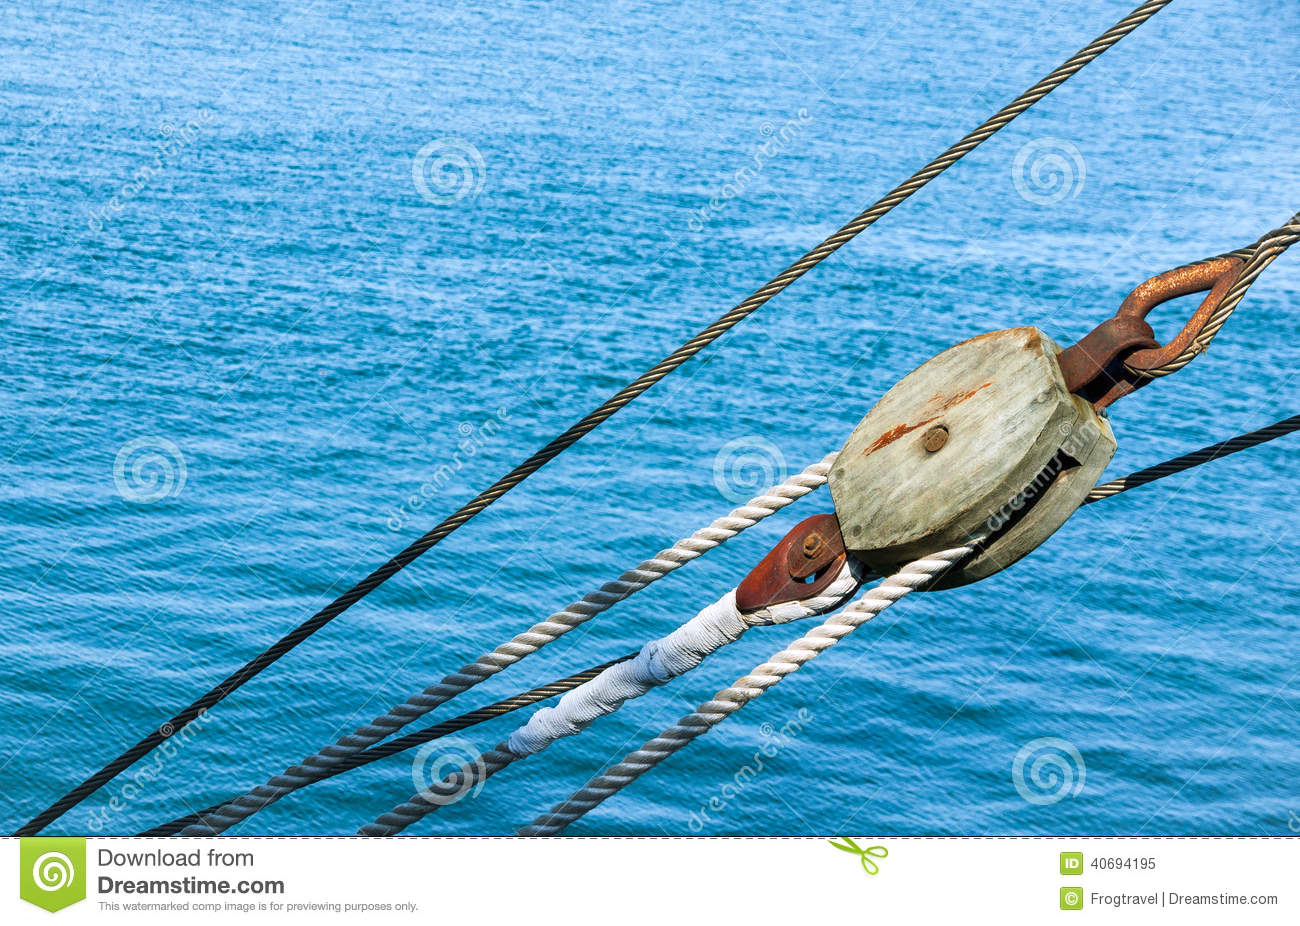 Marine ropes stock image. Image of antique, ropes, boat - 40694195